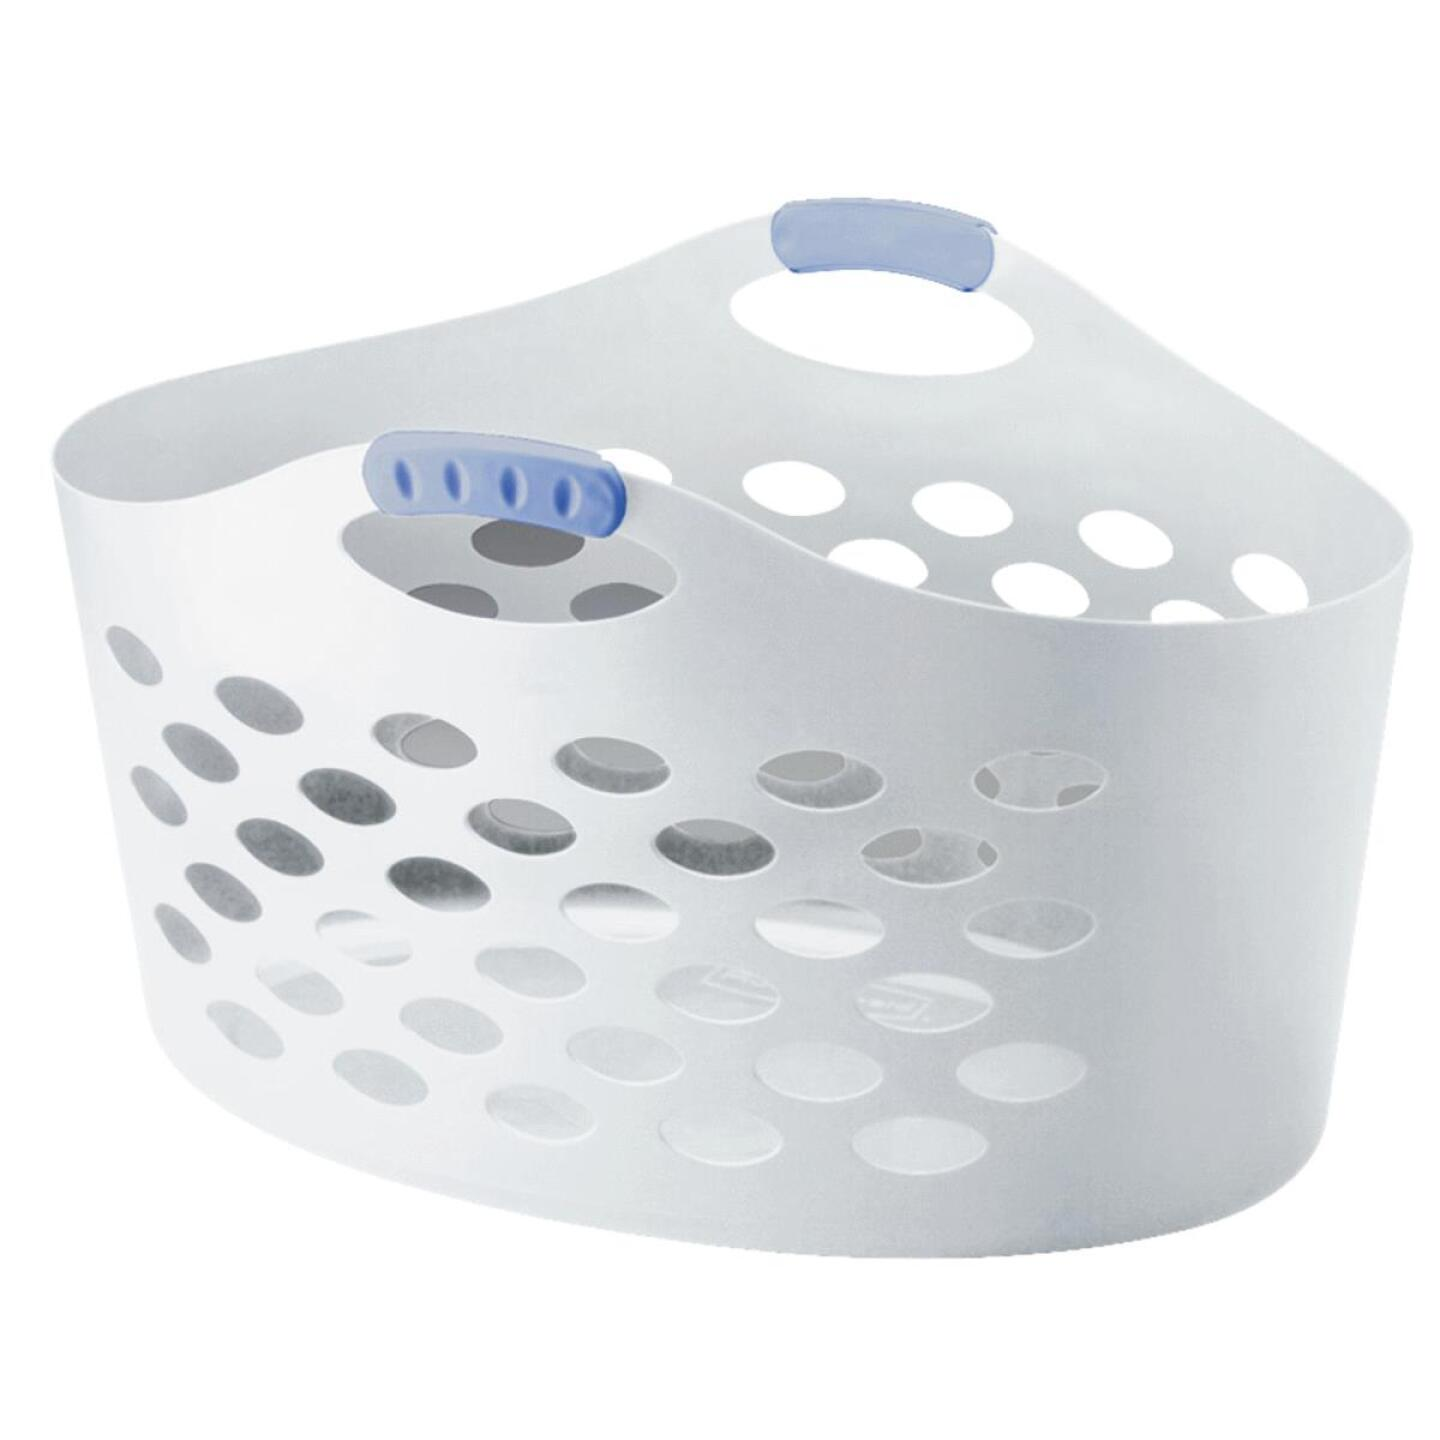 Rubbermaid Flex 'N Carry White Laundry Basket Image 1